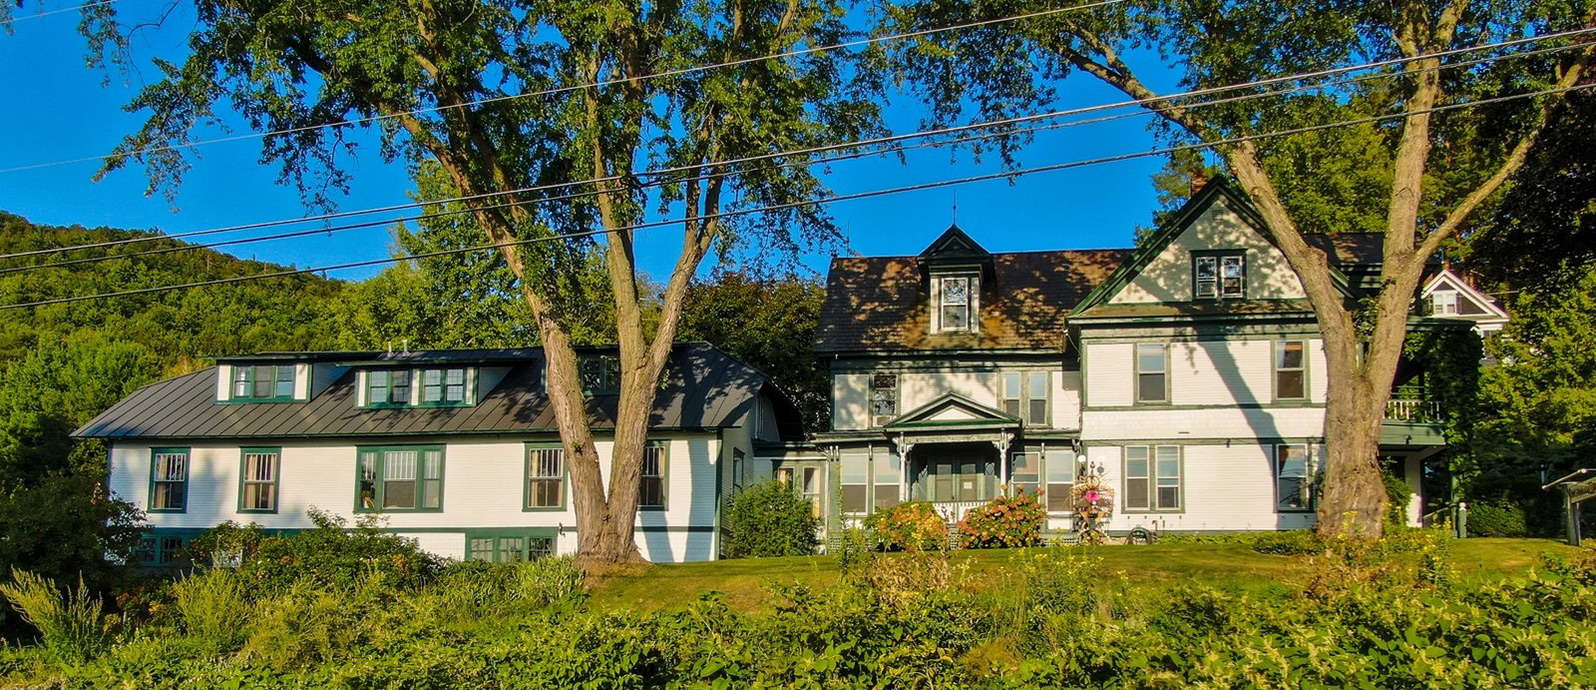 The Mount Philo Inn for Sale in Charlotte Vermont